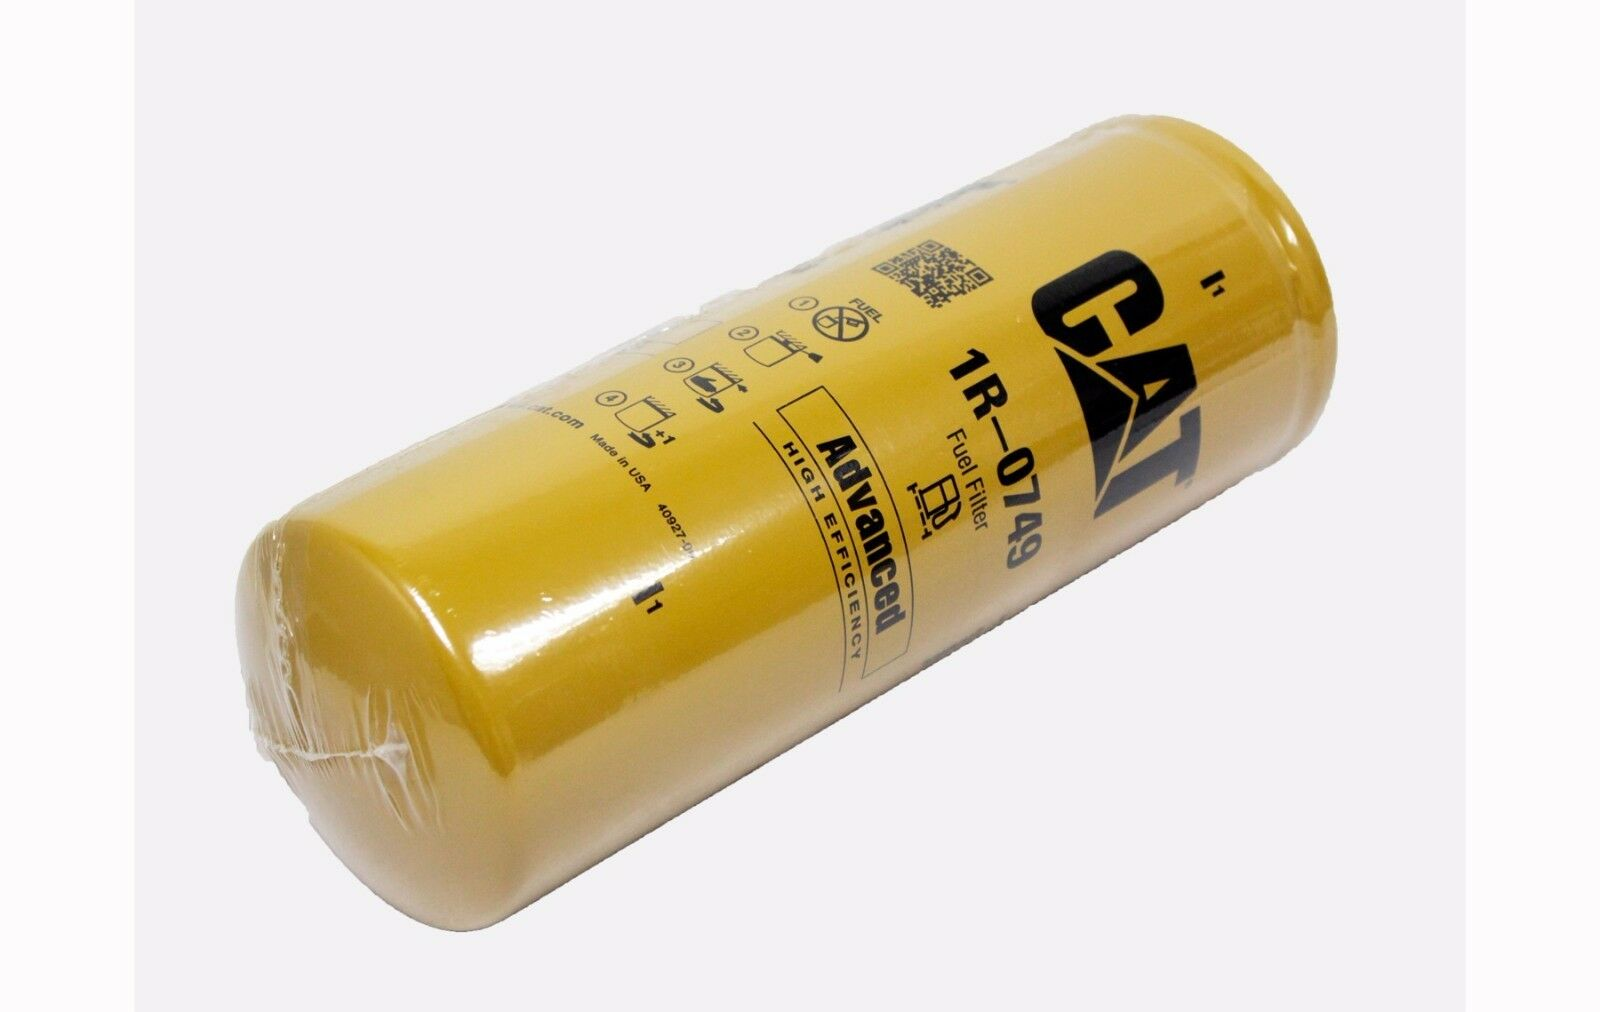 Caterpillar 1r0749 Engine Fuel Filter 3406 C15 Genuine Oem Advanced Efficiency 1 Of 1free Shipping